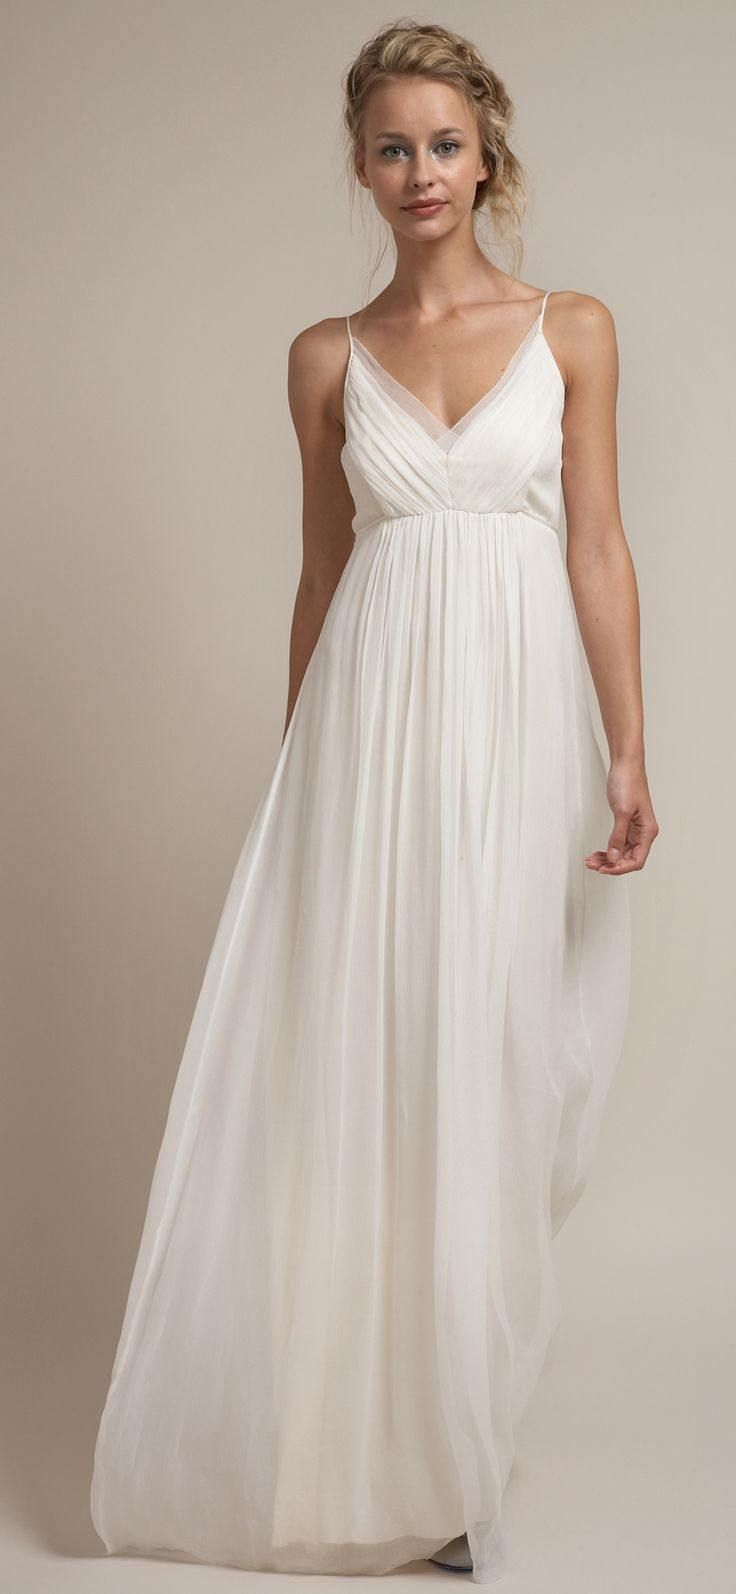 casual wedding dresses informal wedding dresses Casual Wedding Dresses For The Minimalist